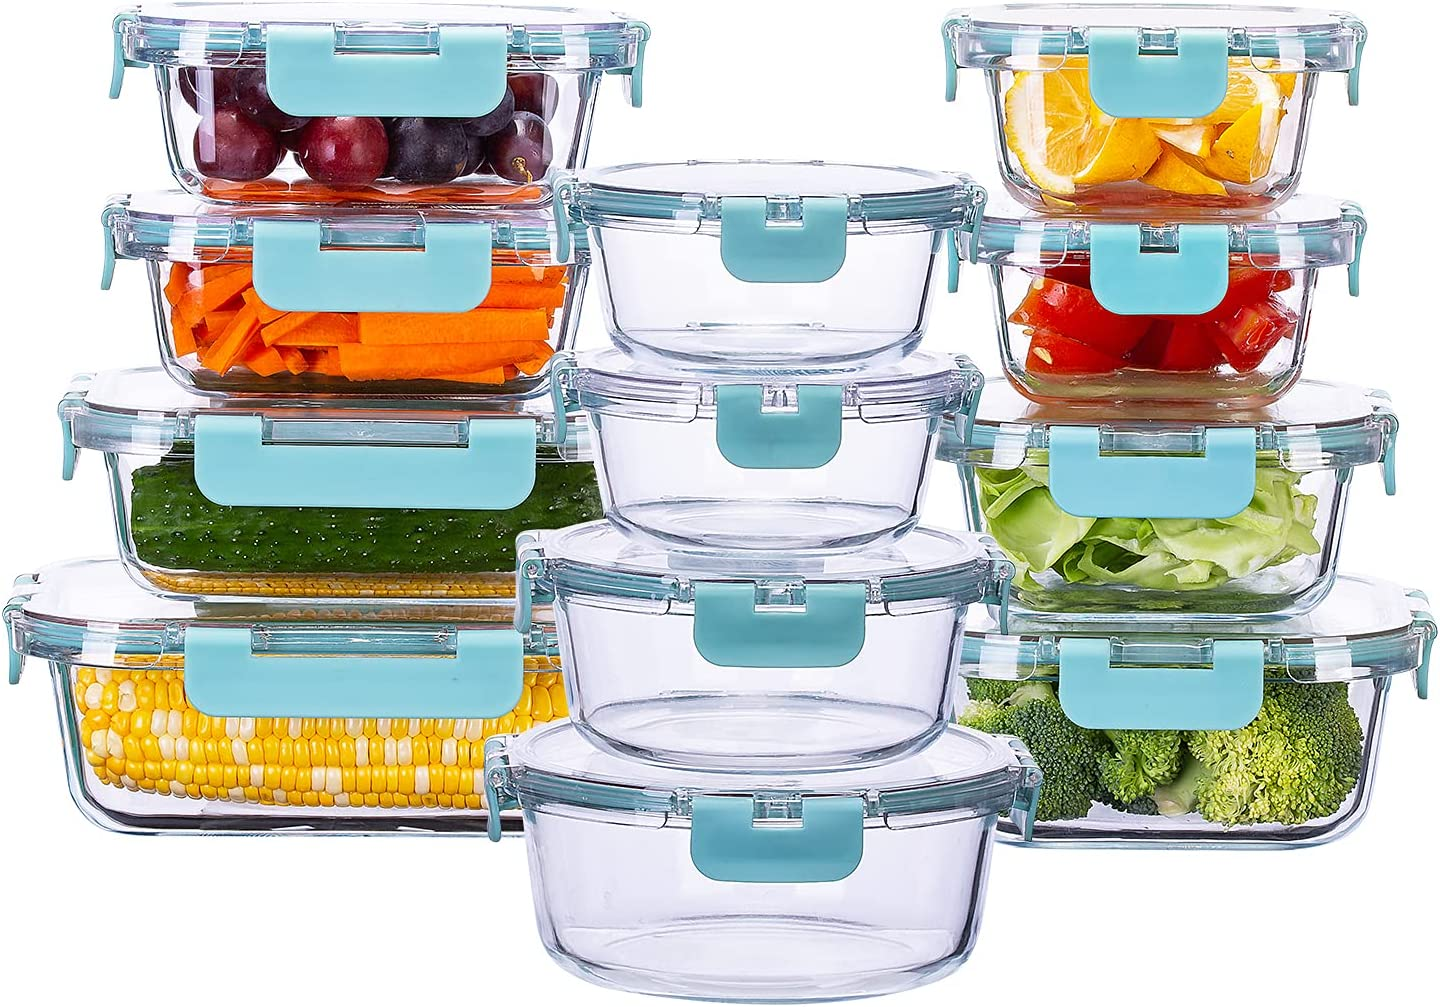 SUNNOW Vastto 12 Pack Glass Food Storage Containers with BPA Free Airtight Lids, Glass Meal Prep Containers,Airtight Glass Lunch Bento Boxes,for Kitchen and Home Use(Turquoise)